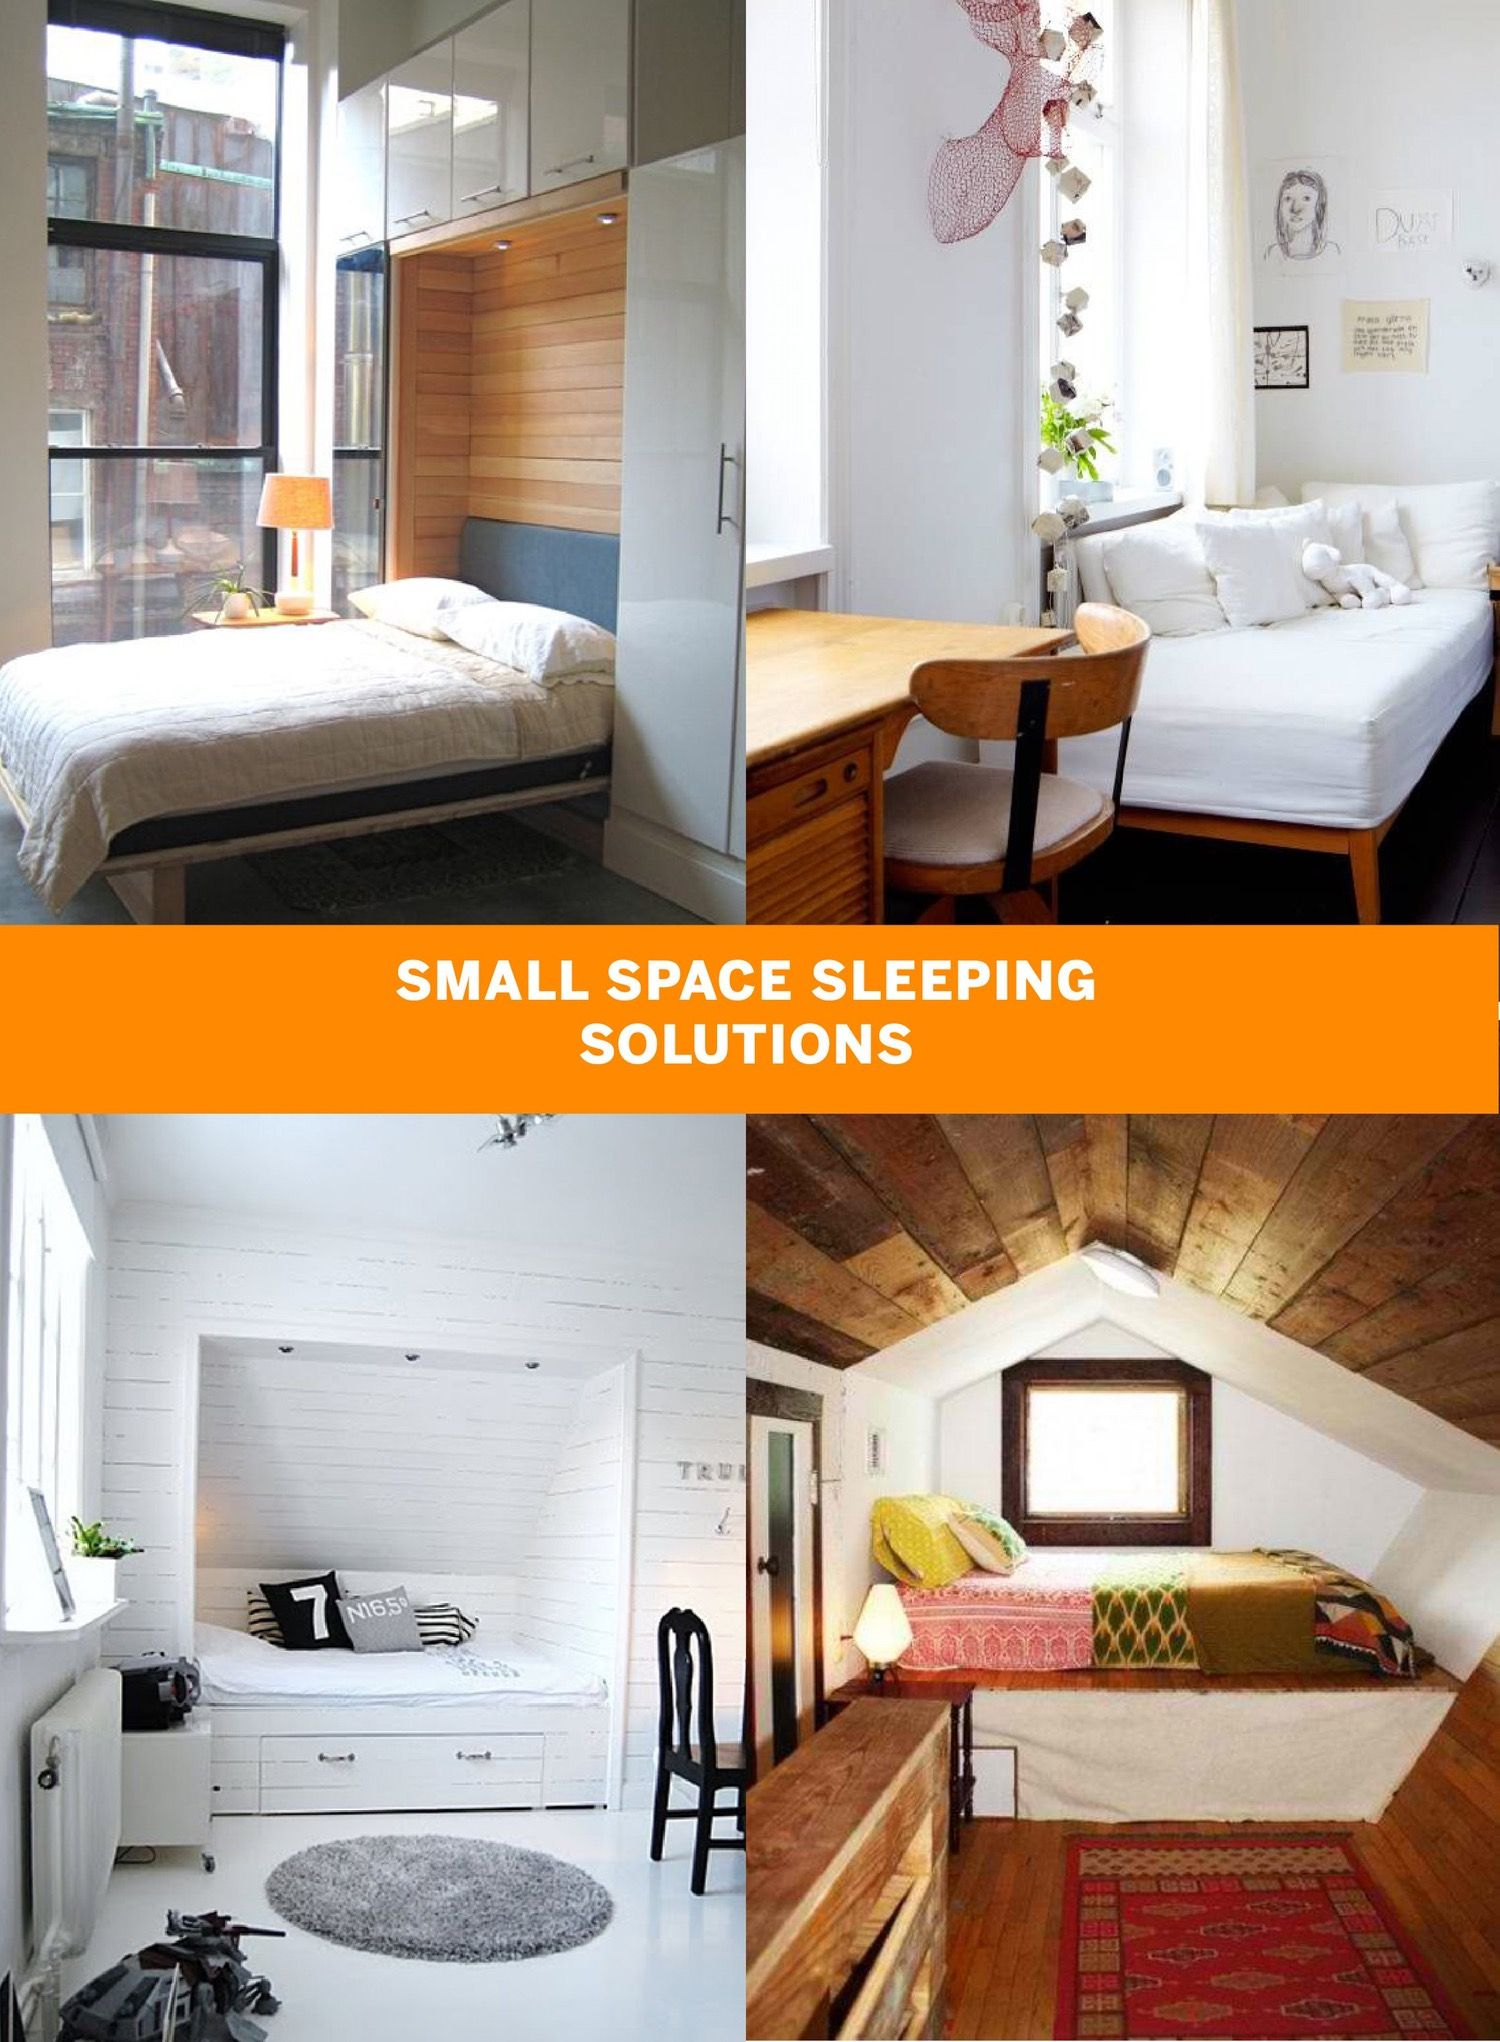 Small E Sleeping Solutions Apartment Design Therapy Studio Living Ideas